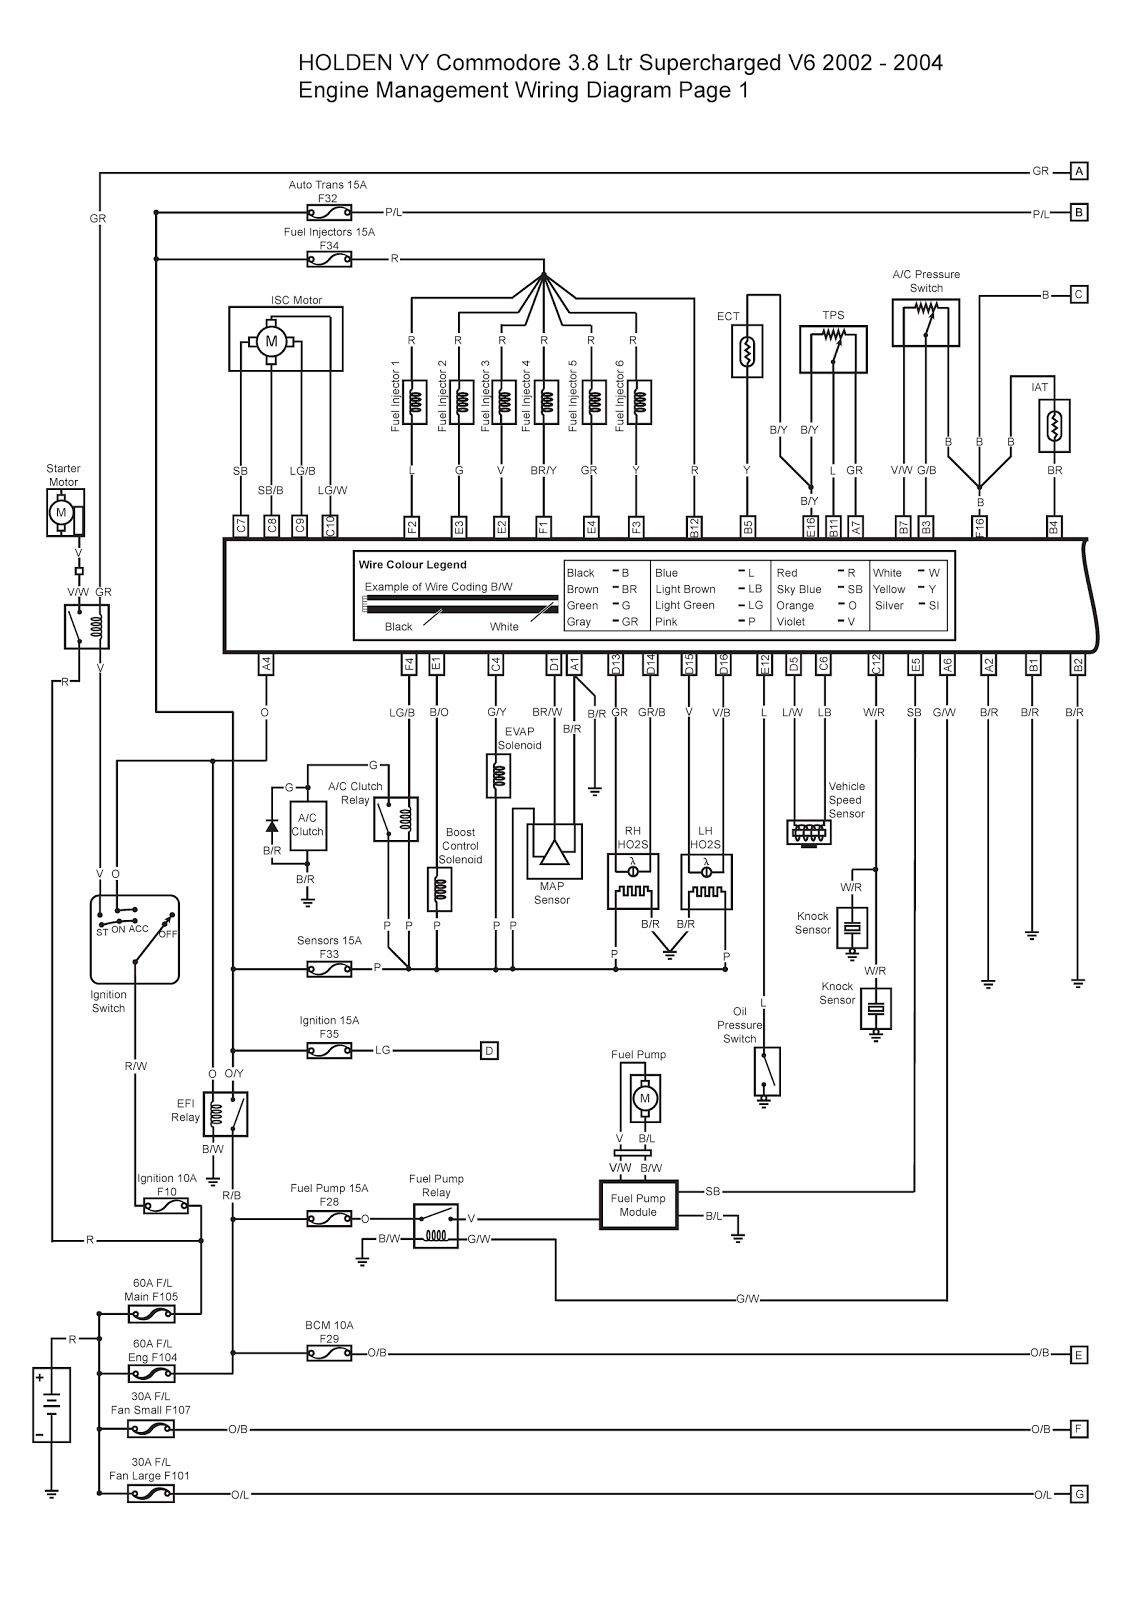 0001 vz wiring diagram efcaviation com vz commodore ecu wiring diagram at bayanpartner.co